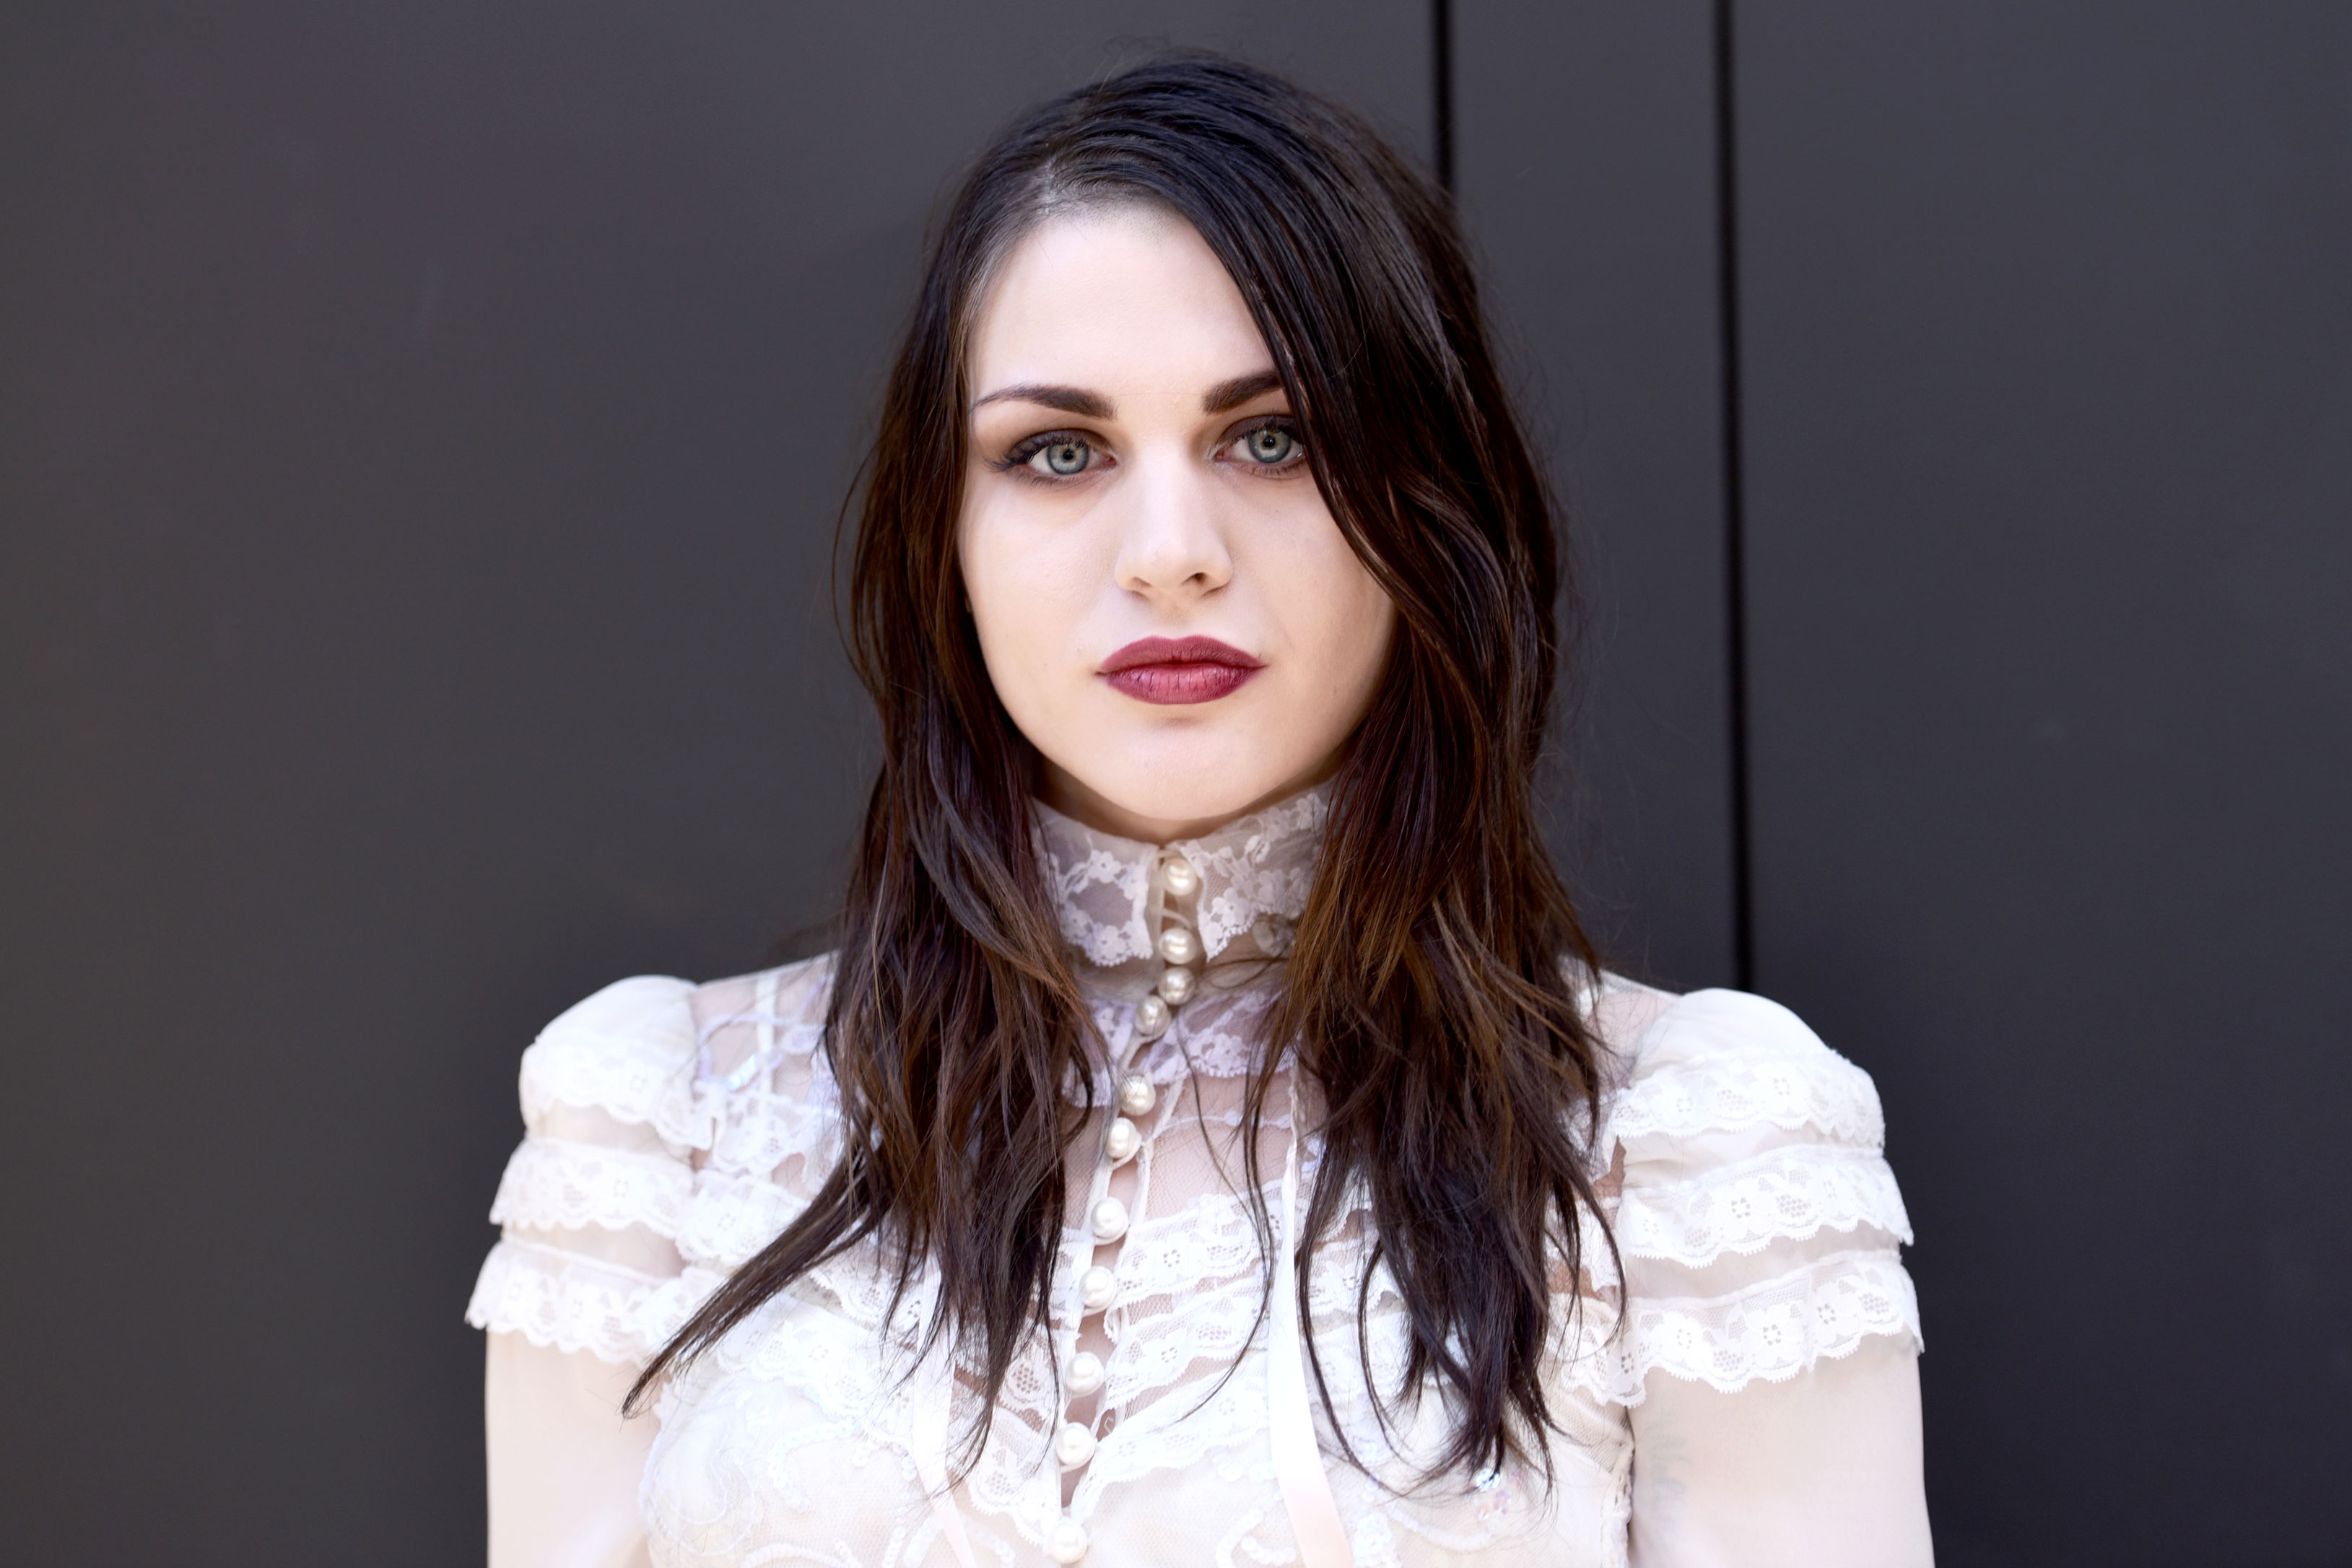 Cleavage Frances Bean Cobain naked (23 photos), Topless, Paparazzi, Boobs, butt 2018